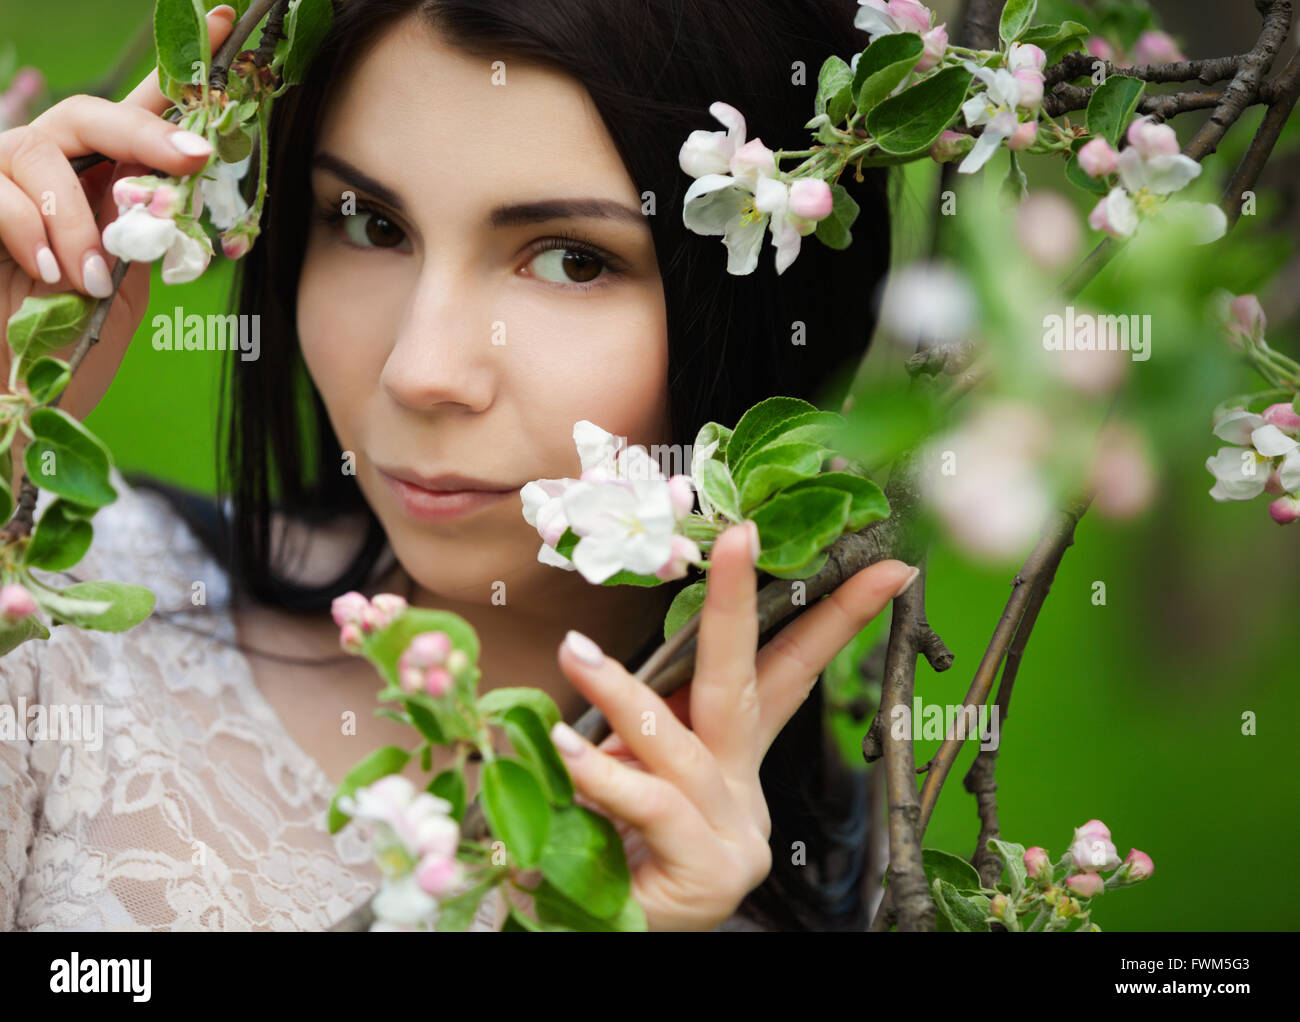 Attractive young woman posing with lilic flowers in green park at bright spring day in her leisure time. Great portrait - Stock Image